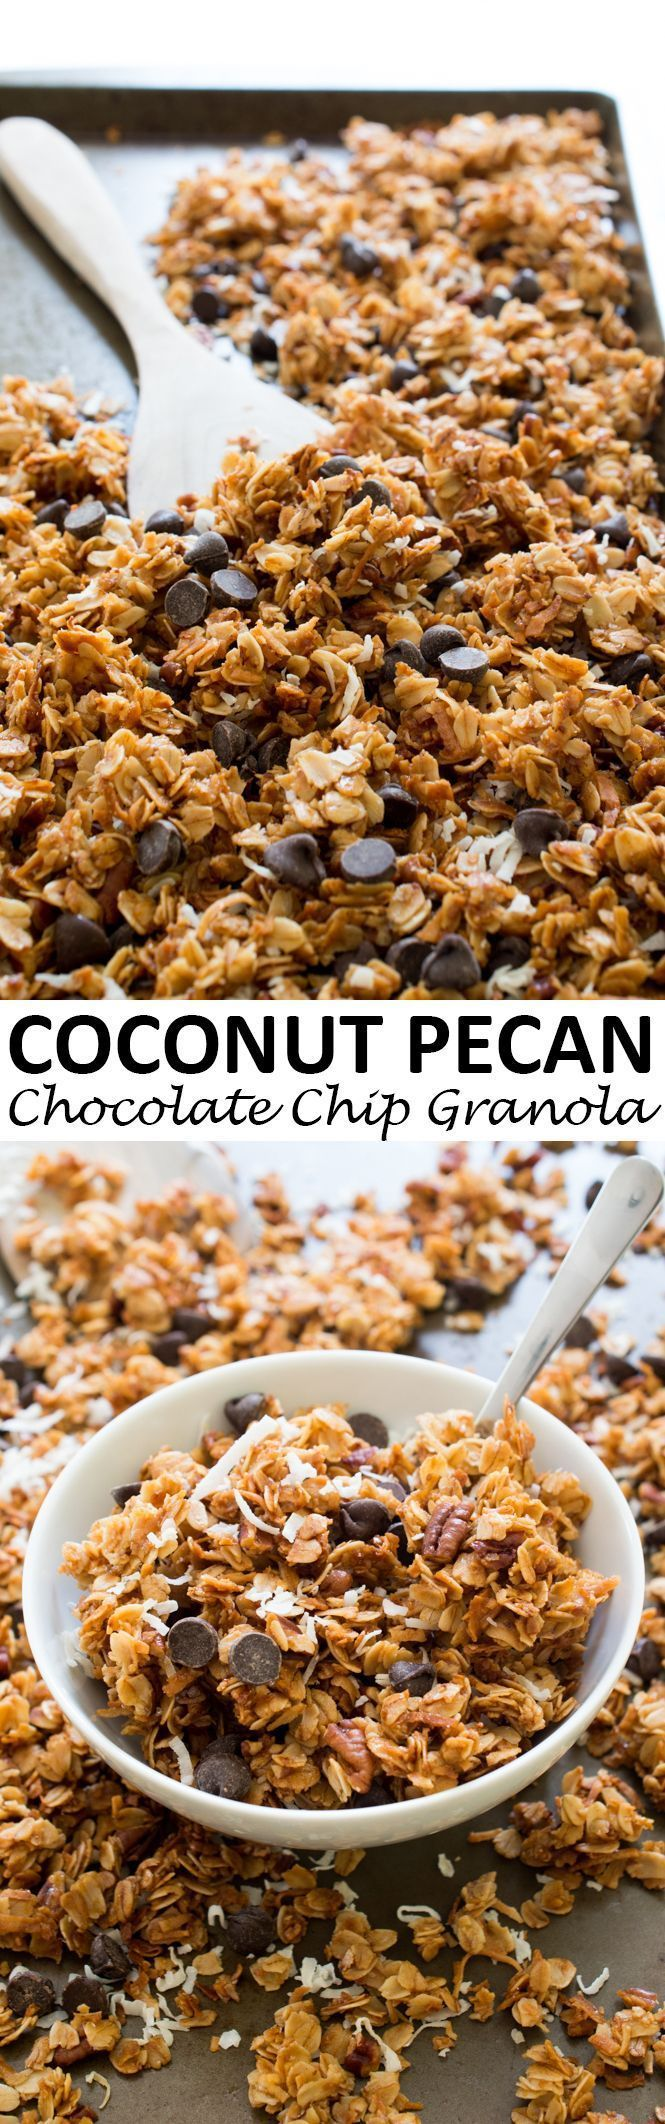 5 Ingredient Coconut Pecan Chocolate Chip Granola  Great for breakfast or as a snack  So much better than store bought    chefsavvy com